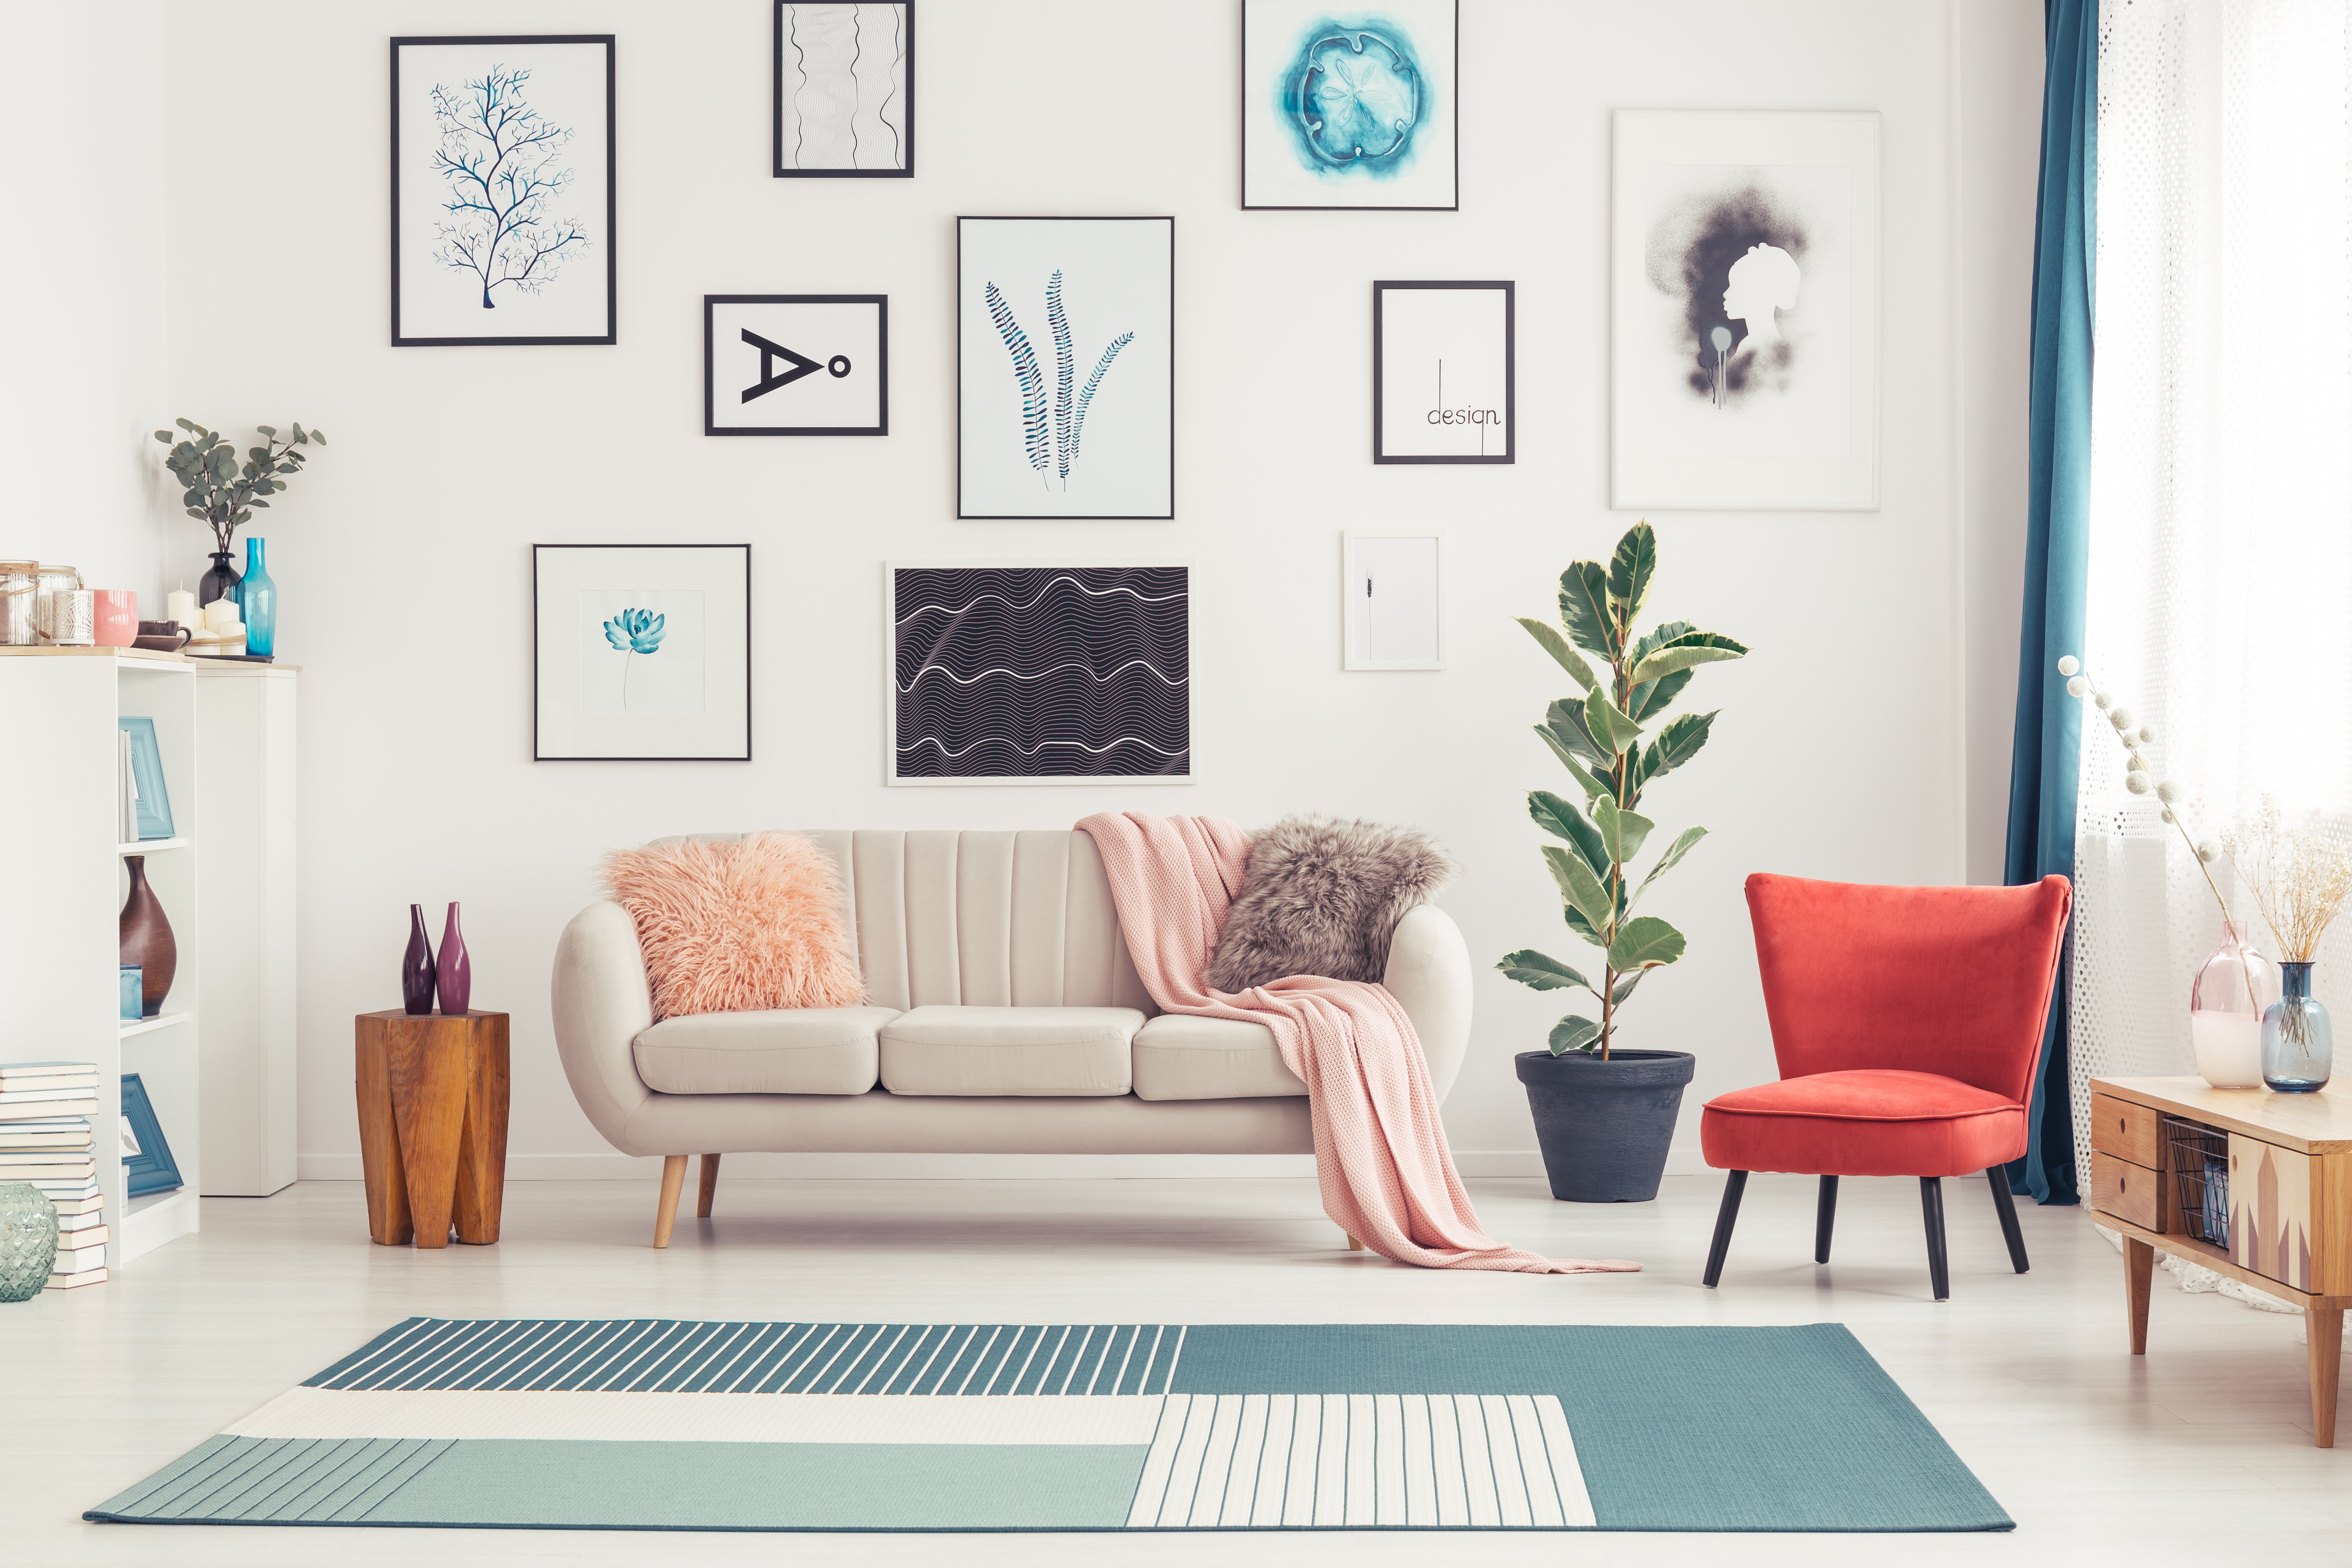 How to Hang Art Without Nails So You Don't Damage Your Walls